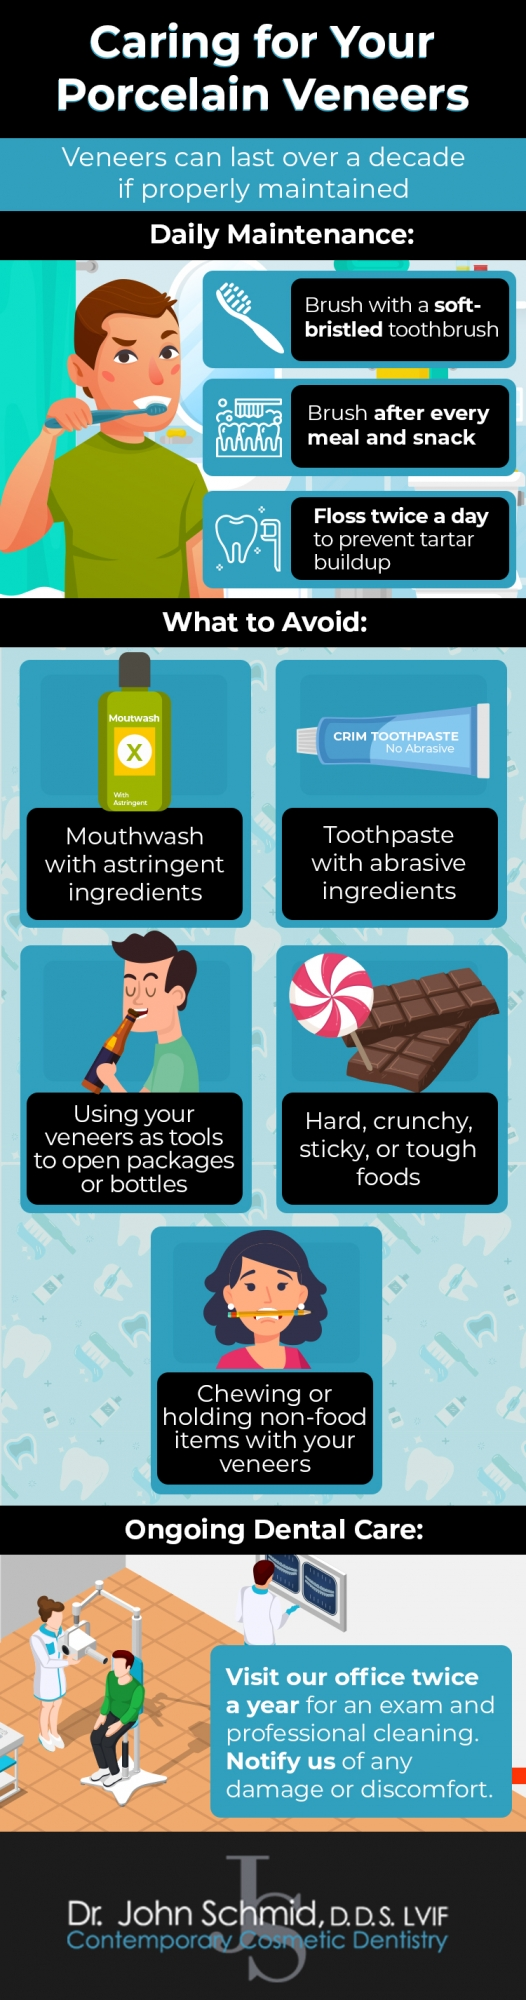 caring for your veneers infographic